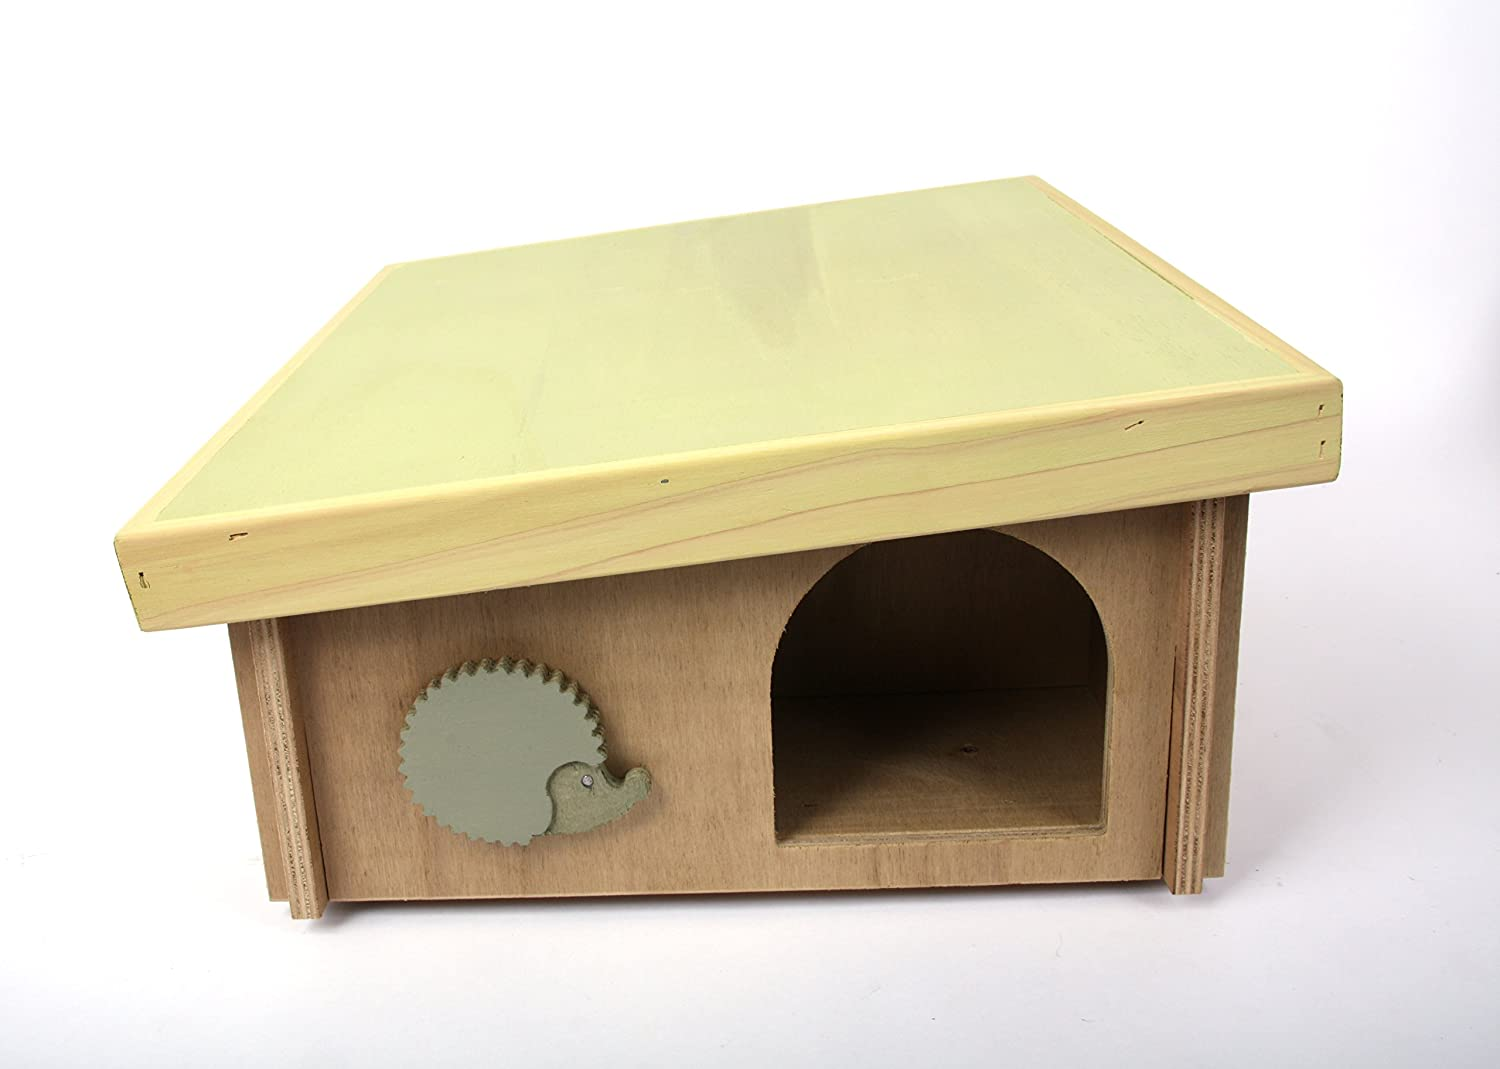 DIY Hedgehog House - 10 Year Rot Guarantee